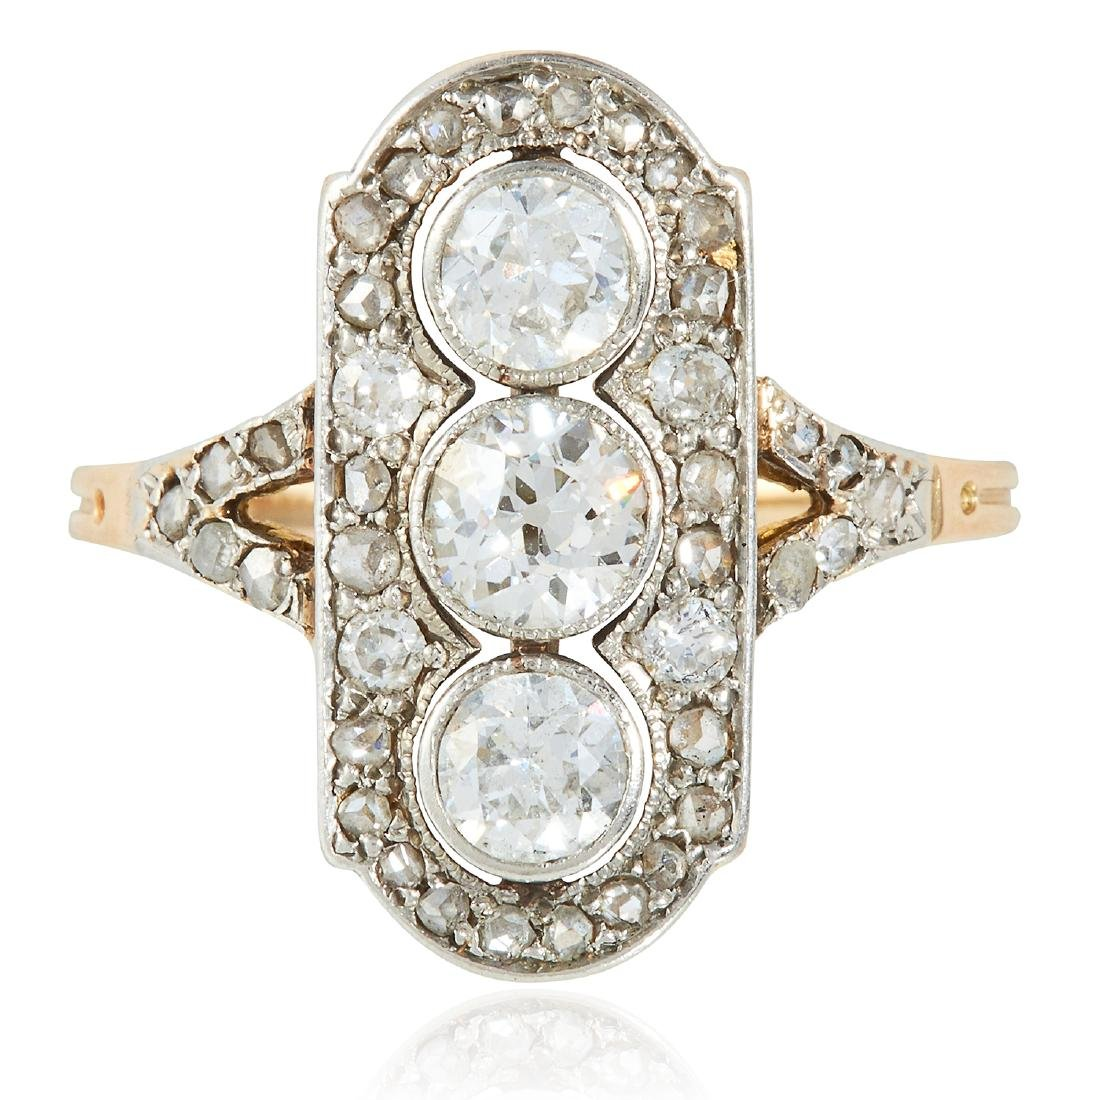 AN ART DECO DIAMOND RING in yellow gold and platinum,